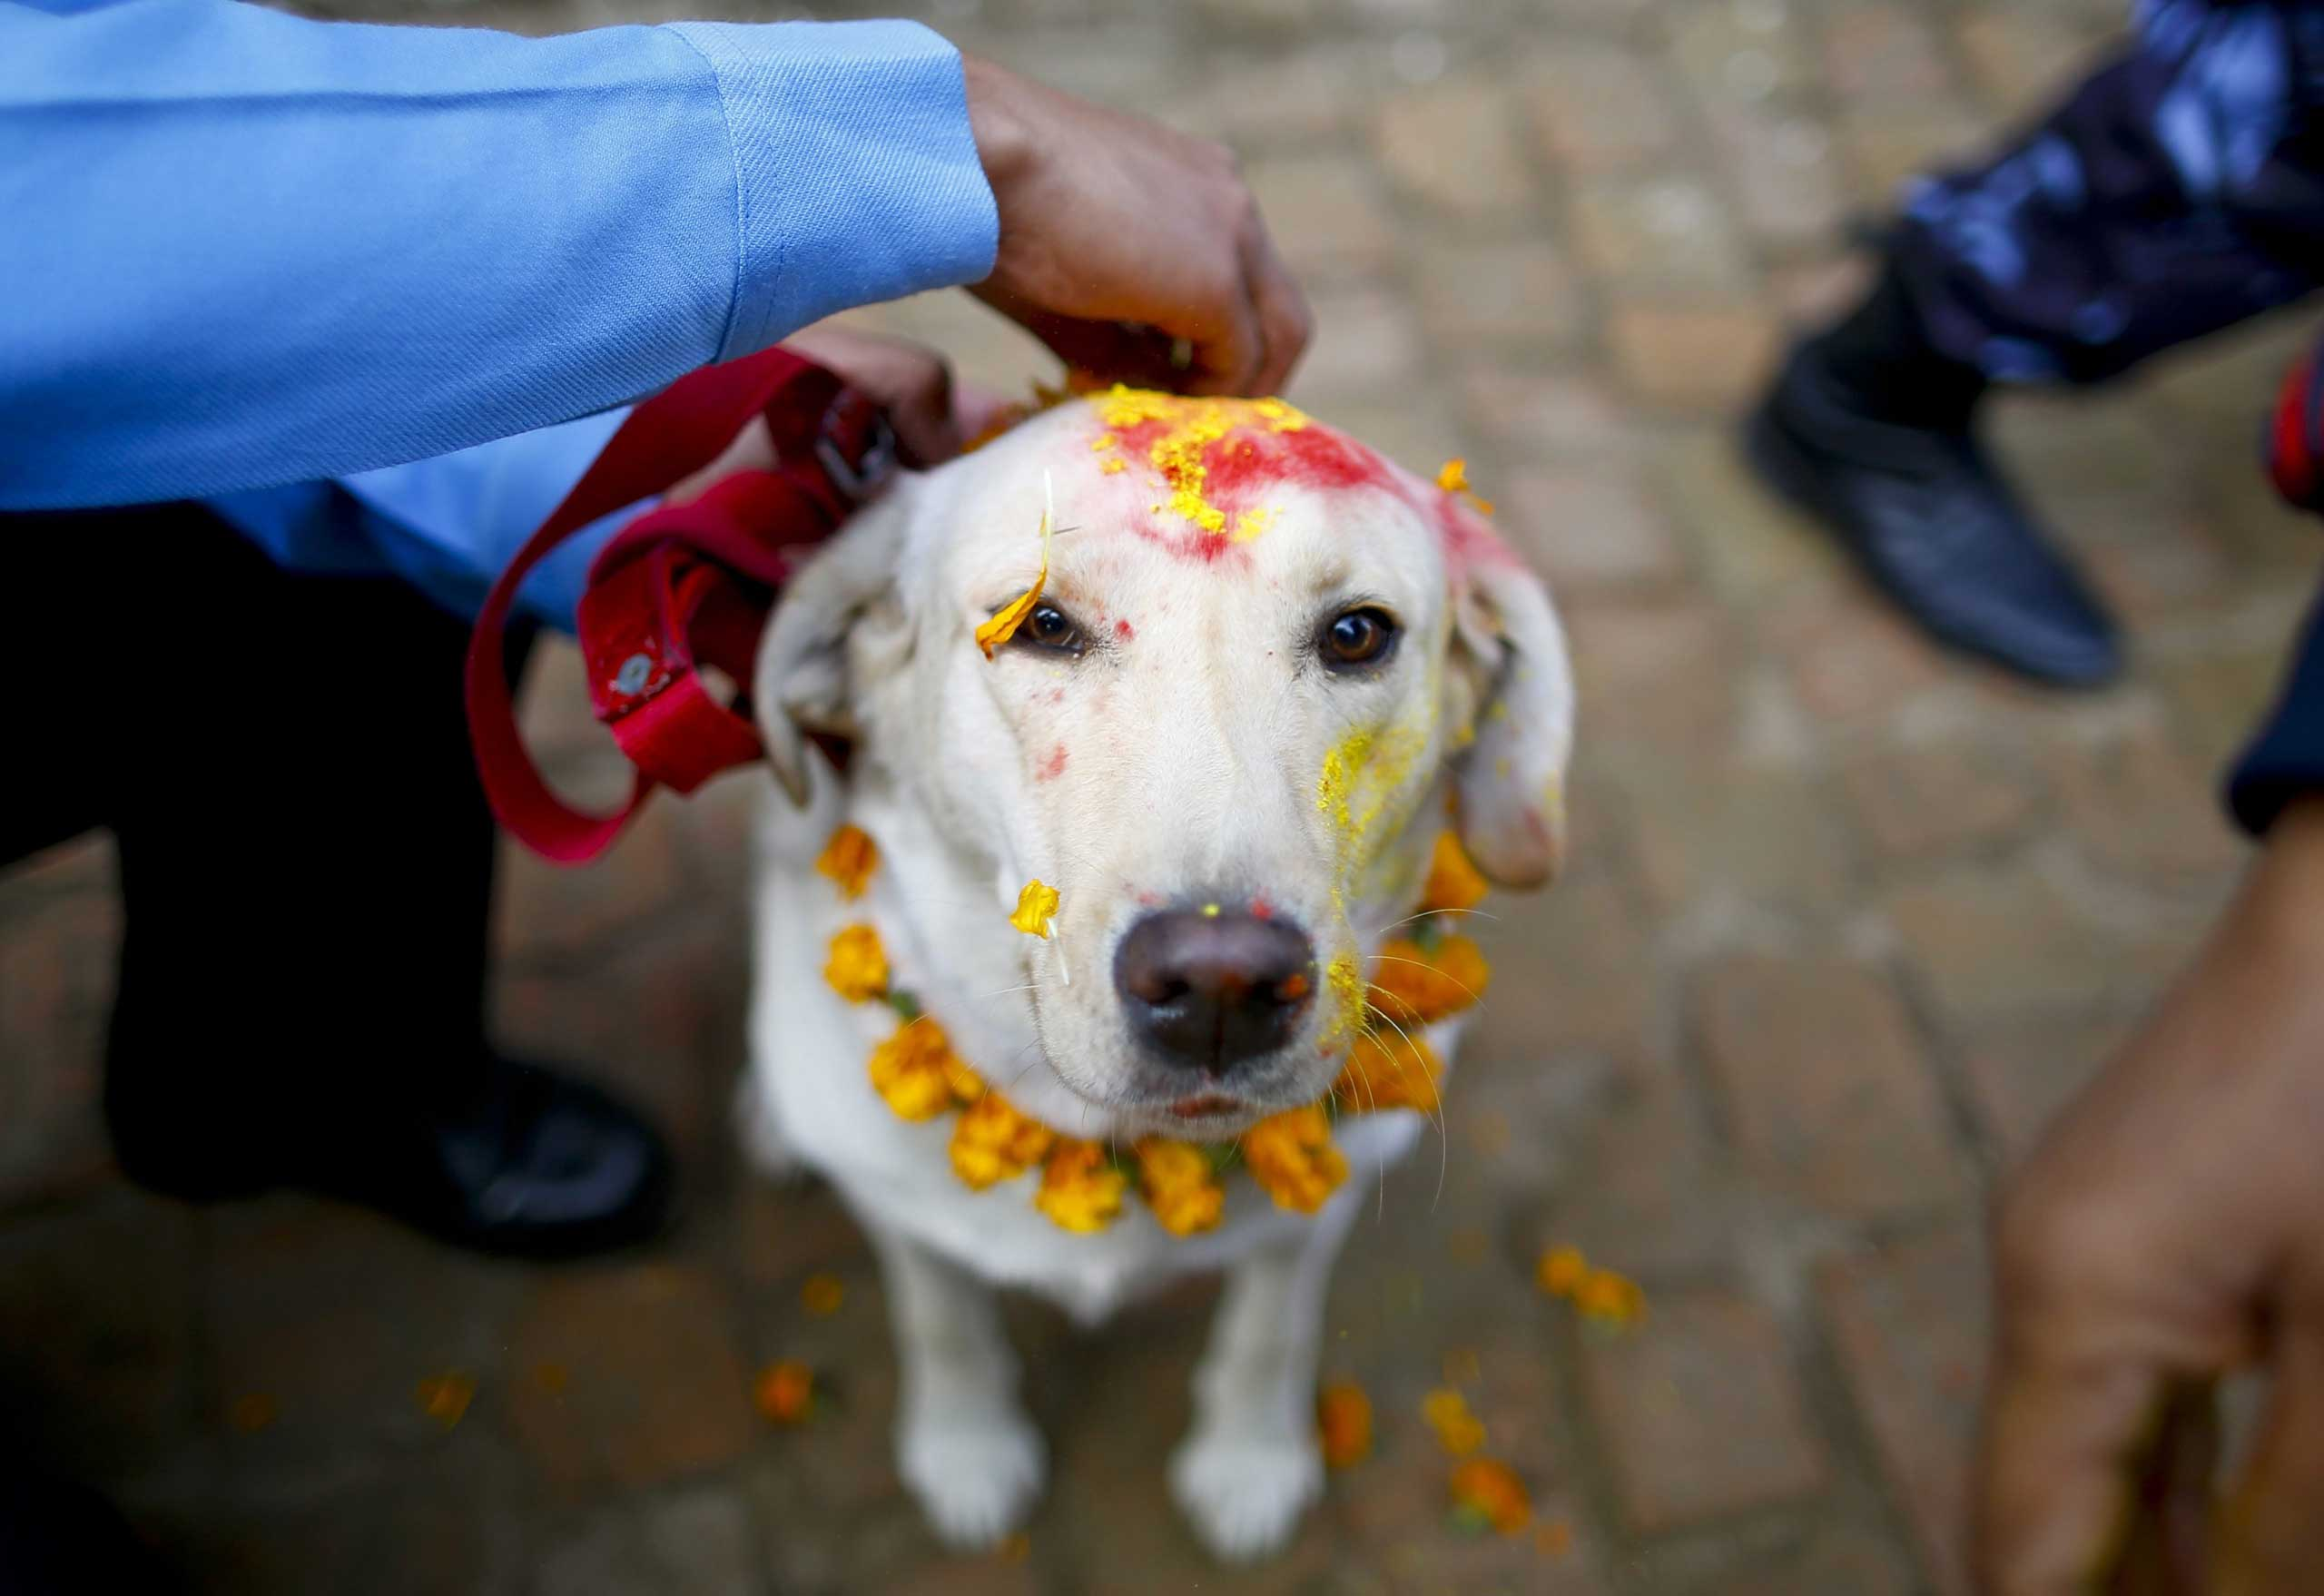 A police officer sprinkles colored powder onto a police dog at Nepal's Central Police Dog Training School during a dog worship day as part of the Diwali festival, in Kathmandu, on Nov. 10, 2015.